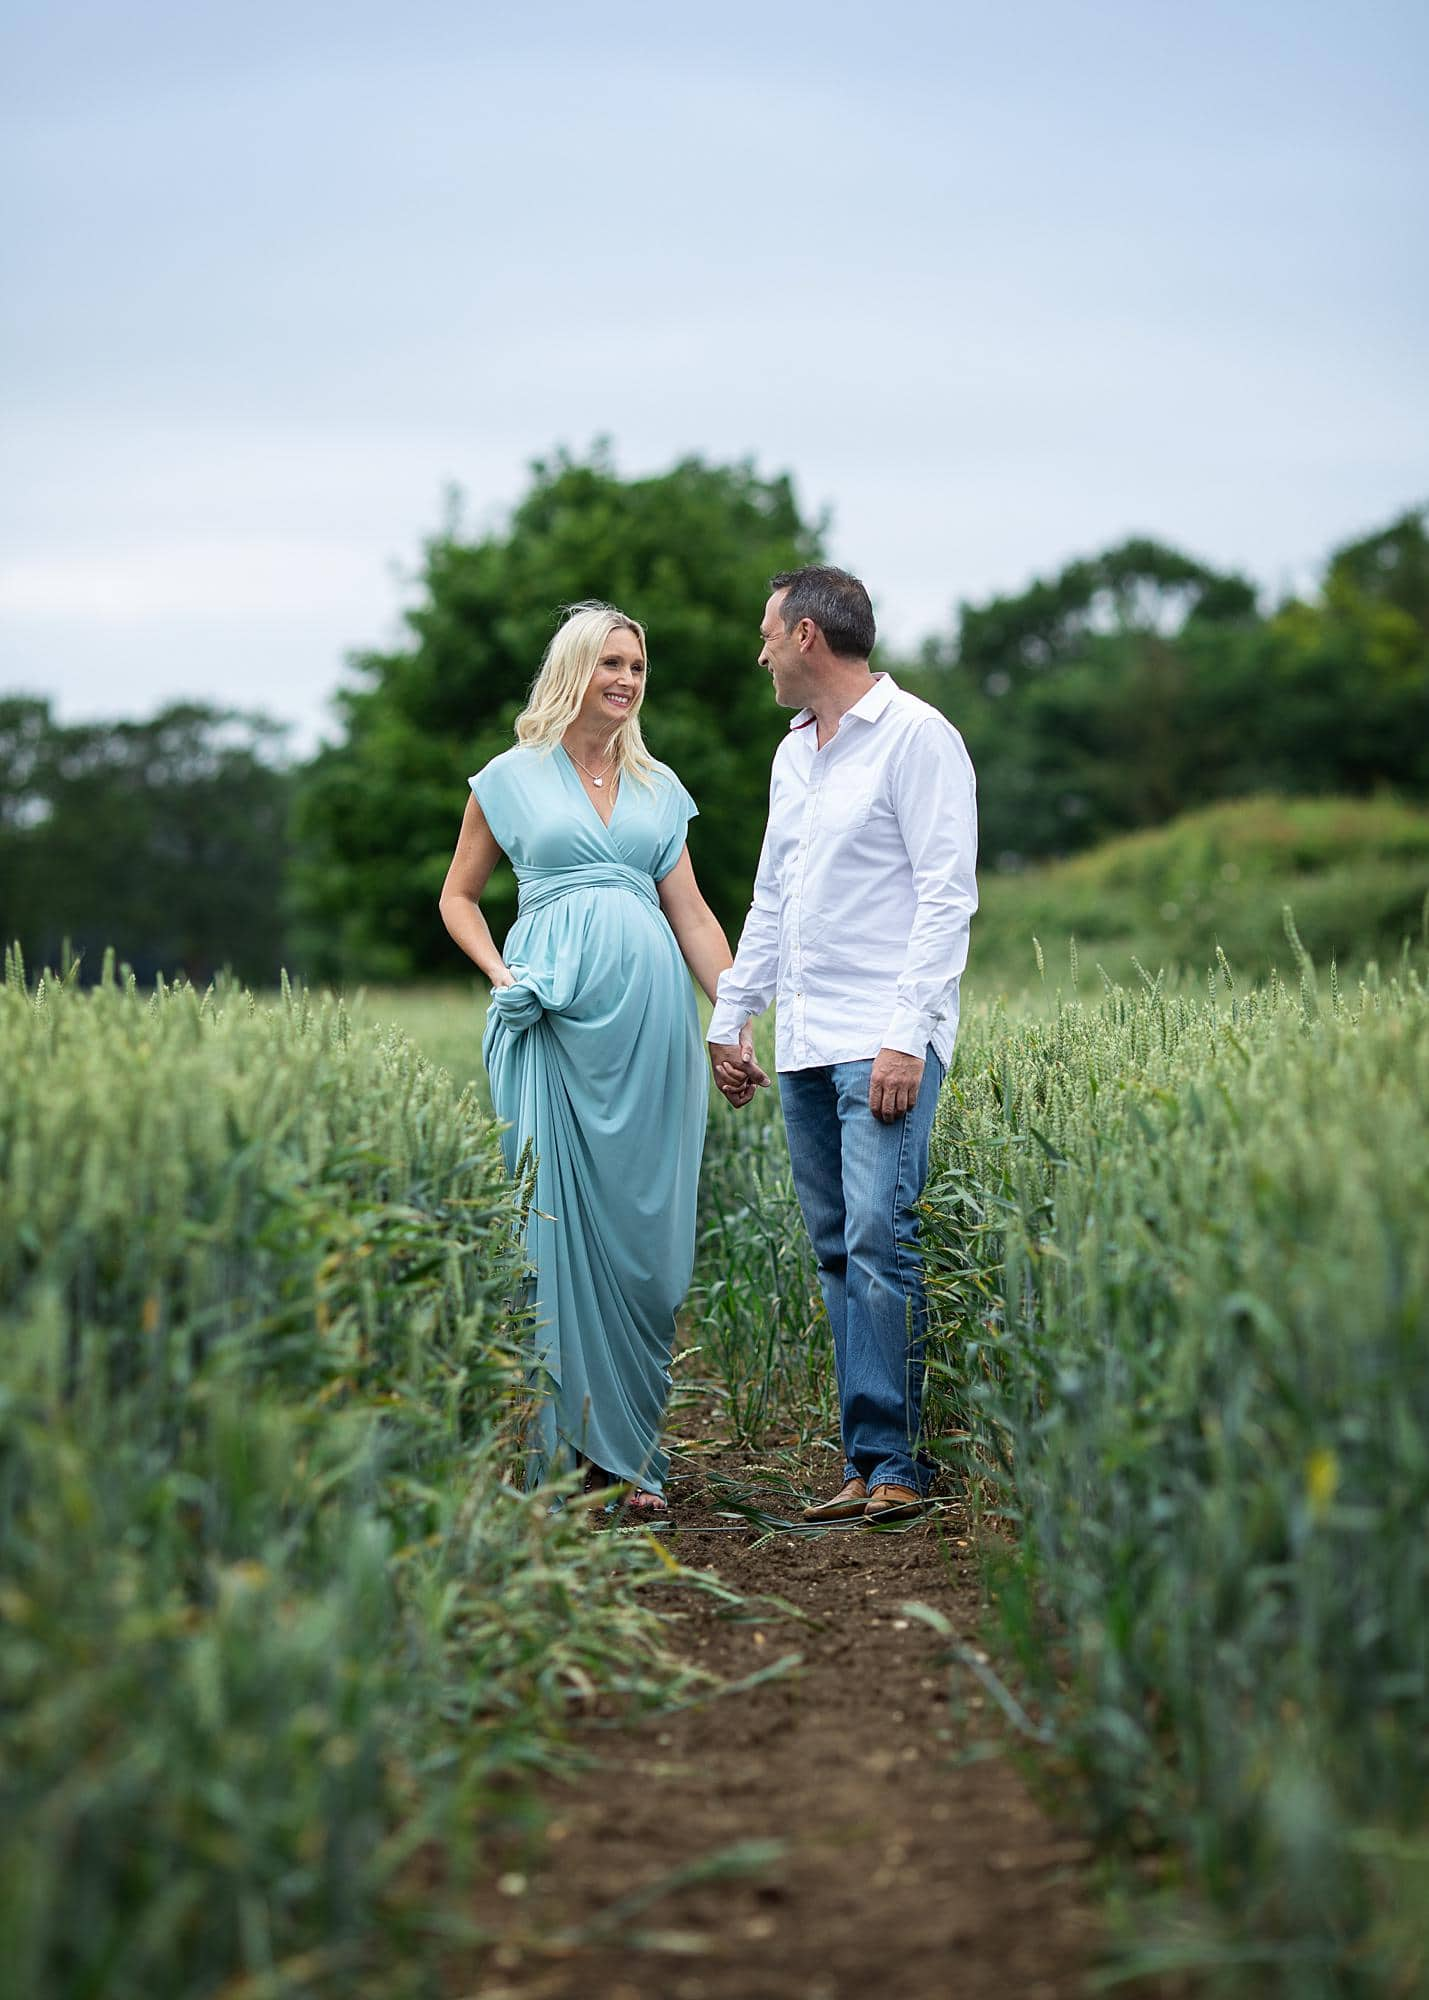 Pregnant woman and her partner posing in a blue dress for a maternity photoshoot in a wheat field in Suffolk